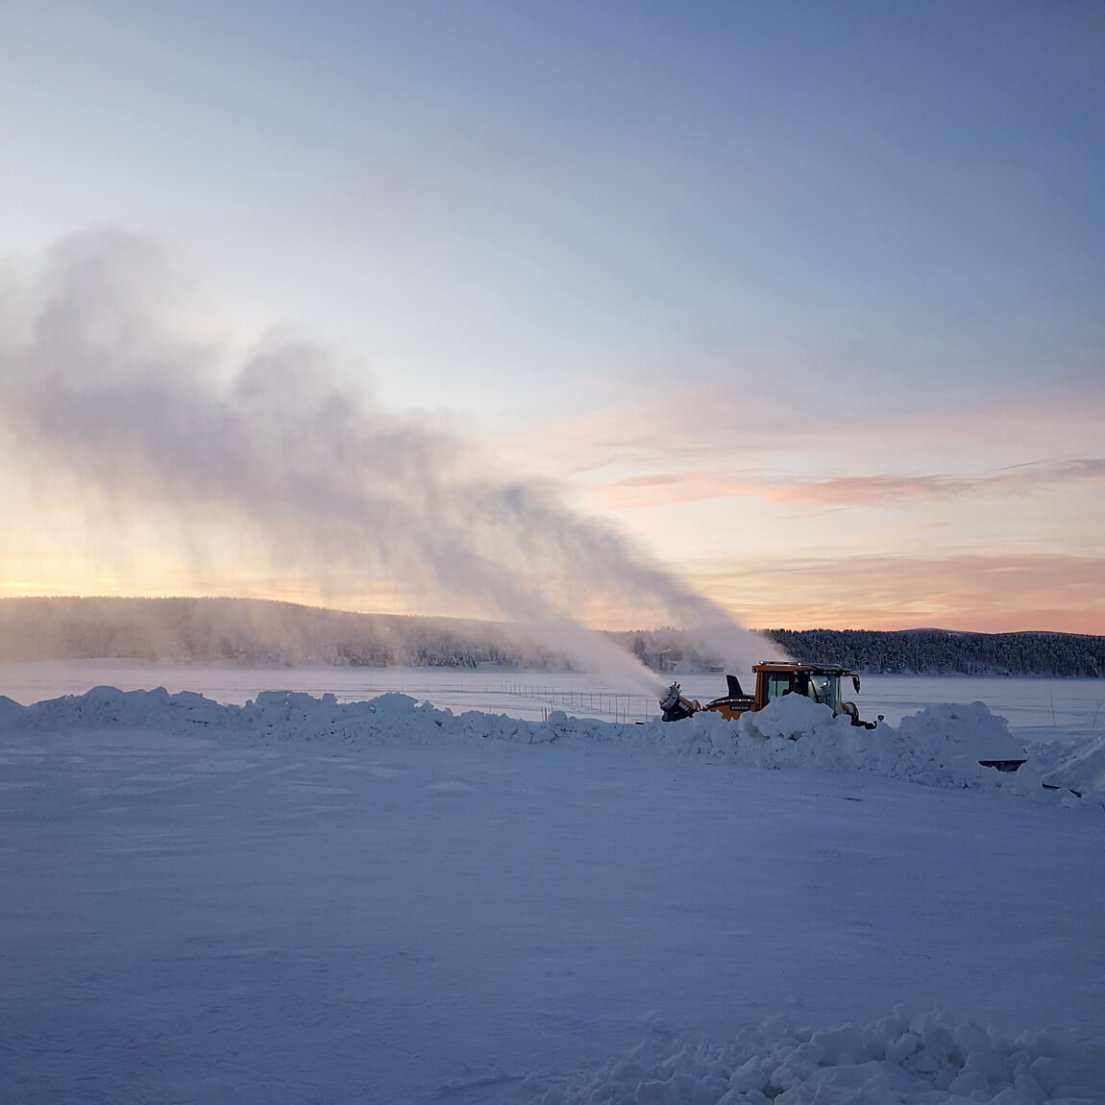 Snow canons at sunset at ICEHOTEL Sweden, helping make the right kind of snow for the construction of ICEHOTEL